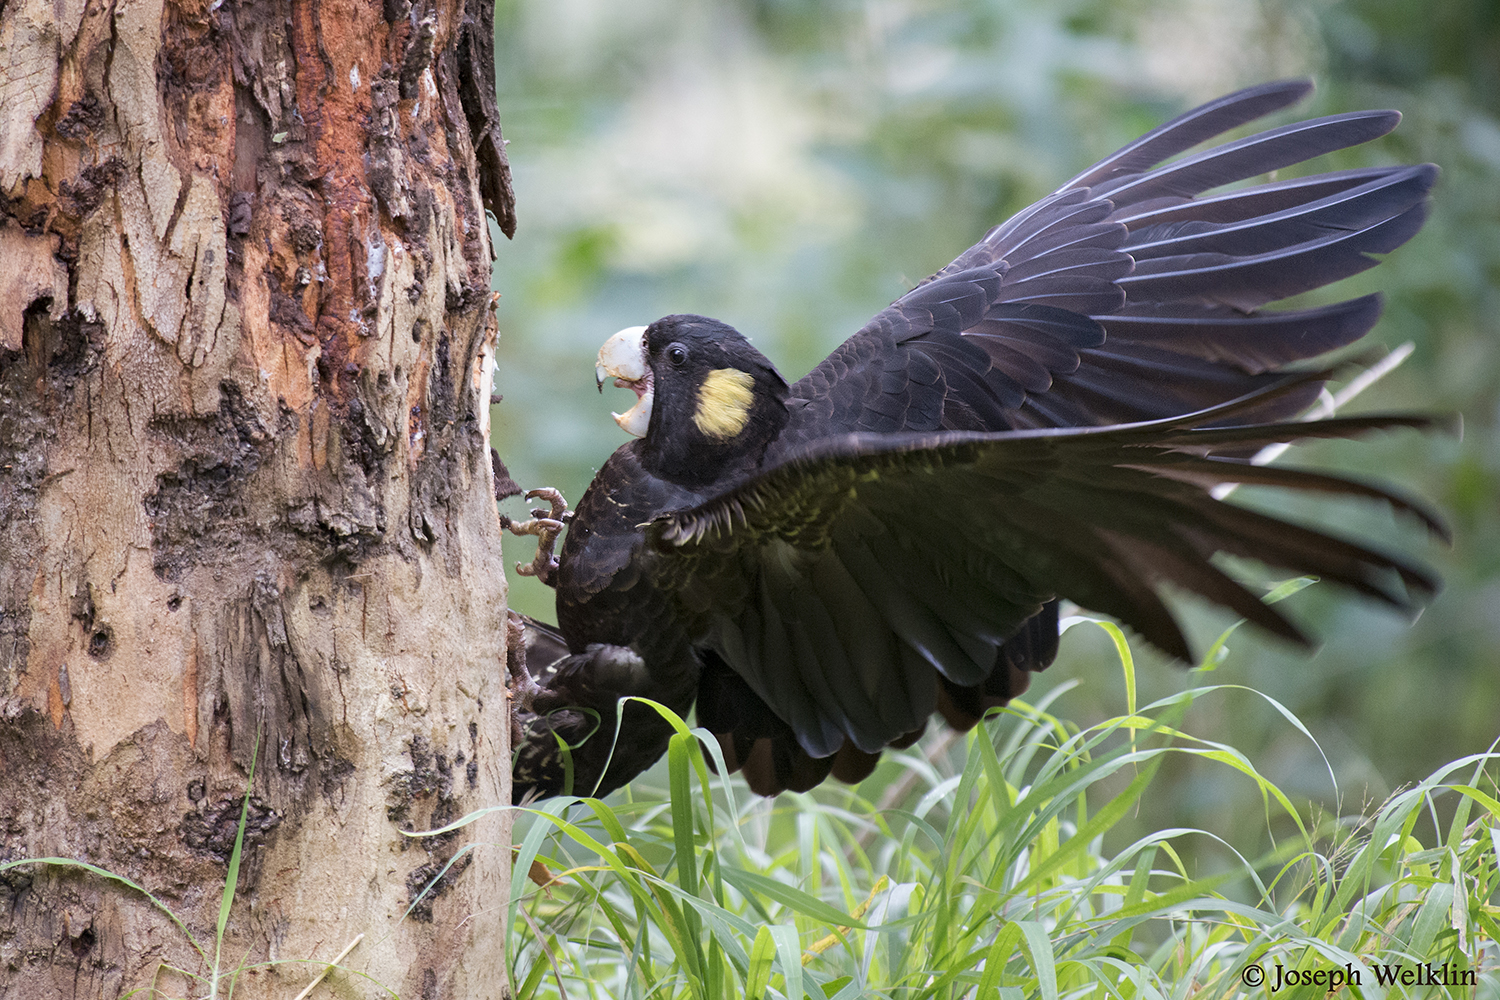 A female Yellow-tailed Black Cockatoo loses her grip on a eucalyptus tree.